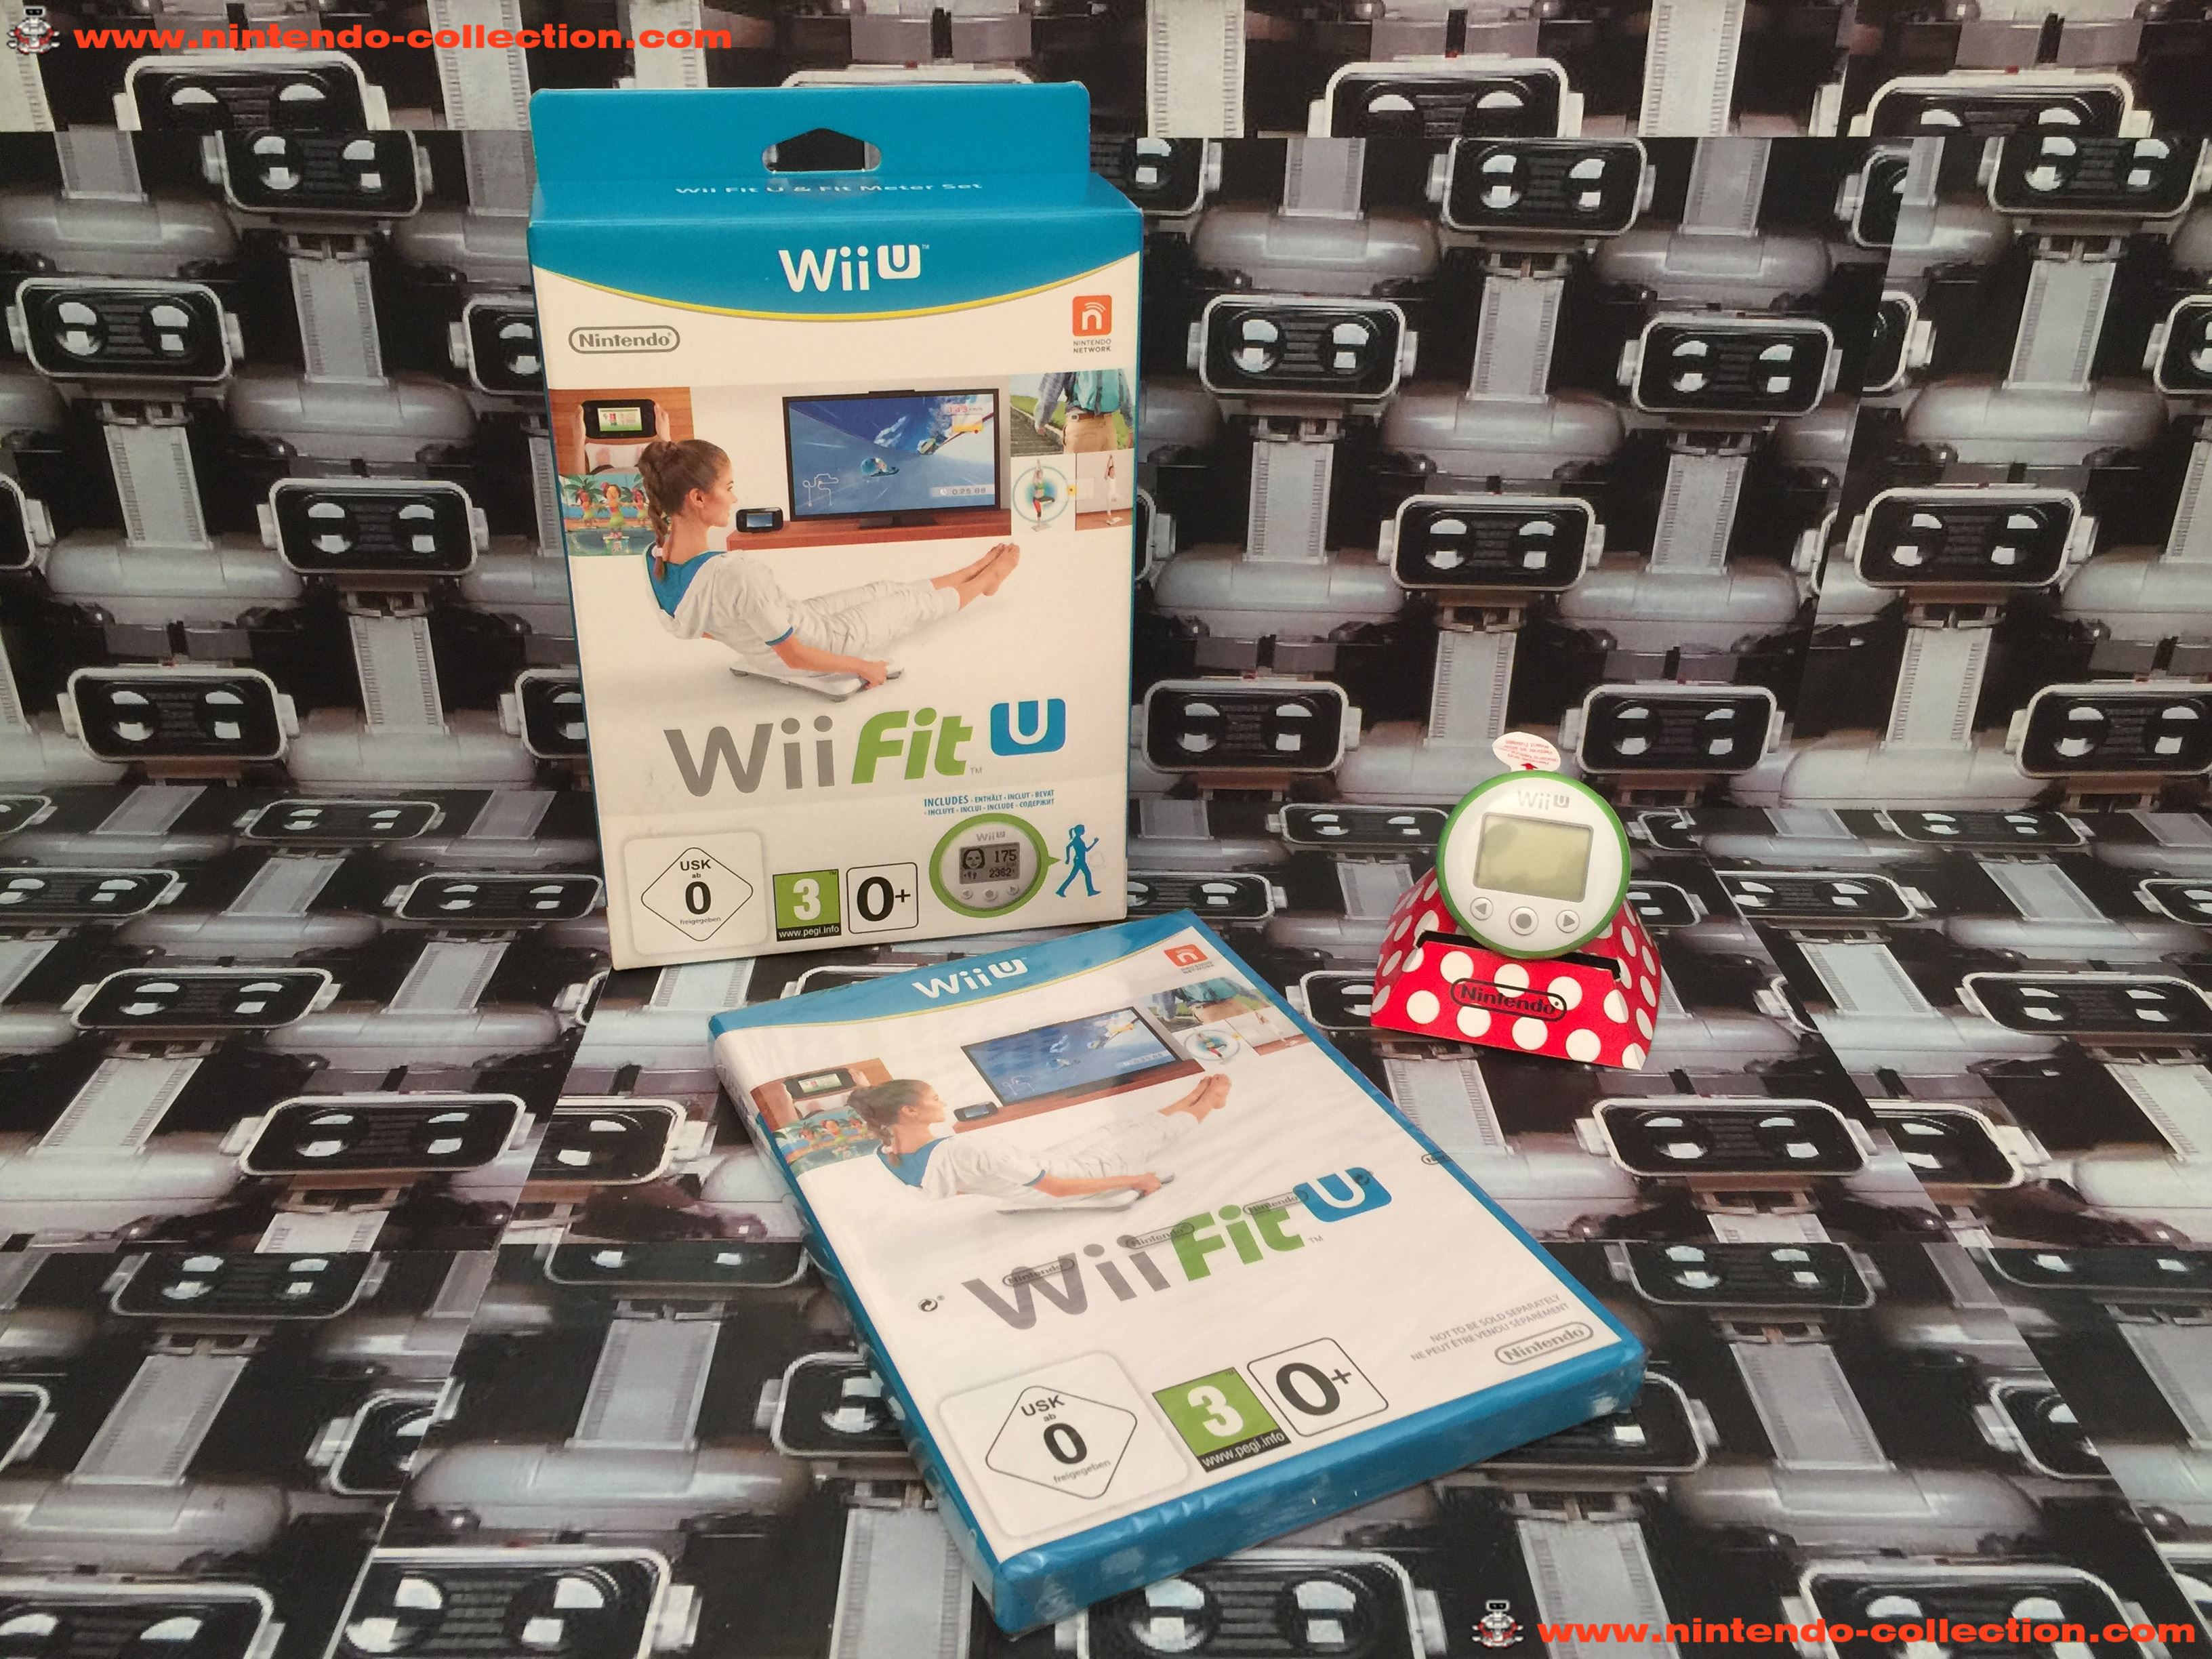 www.nintendo-collection.com - Wii U game Jeu Wii Fit U & Fit Meter Green Vert Set - 01